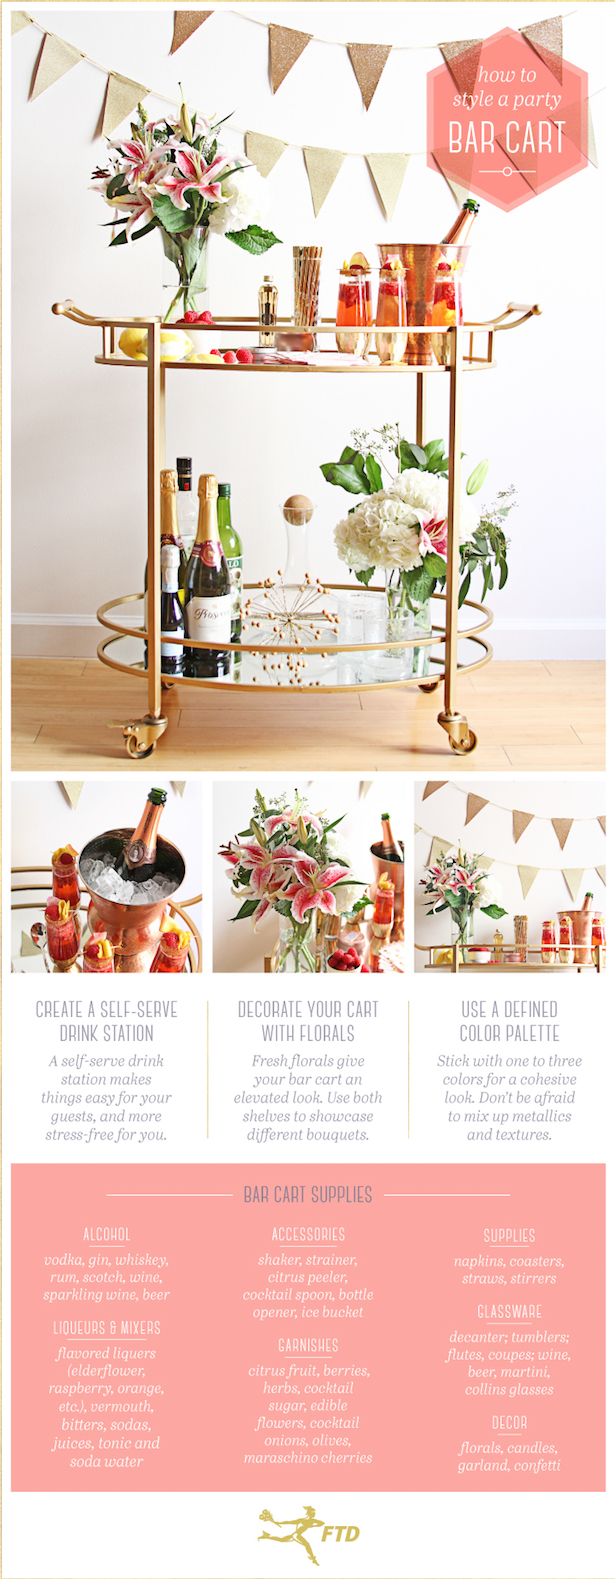 No party is complete without a handy bar cart. Learn how to style your bar cart with this quick guide.